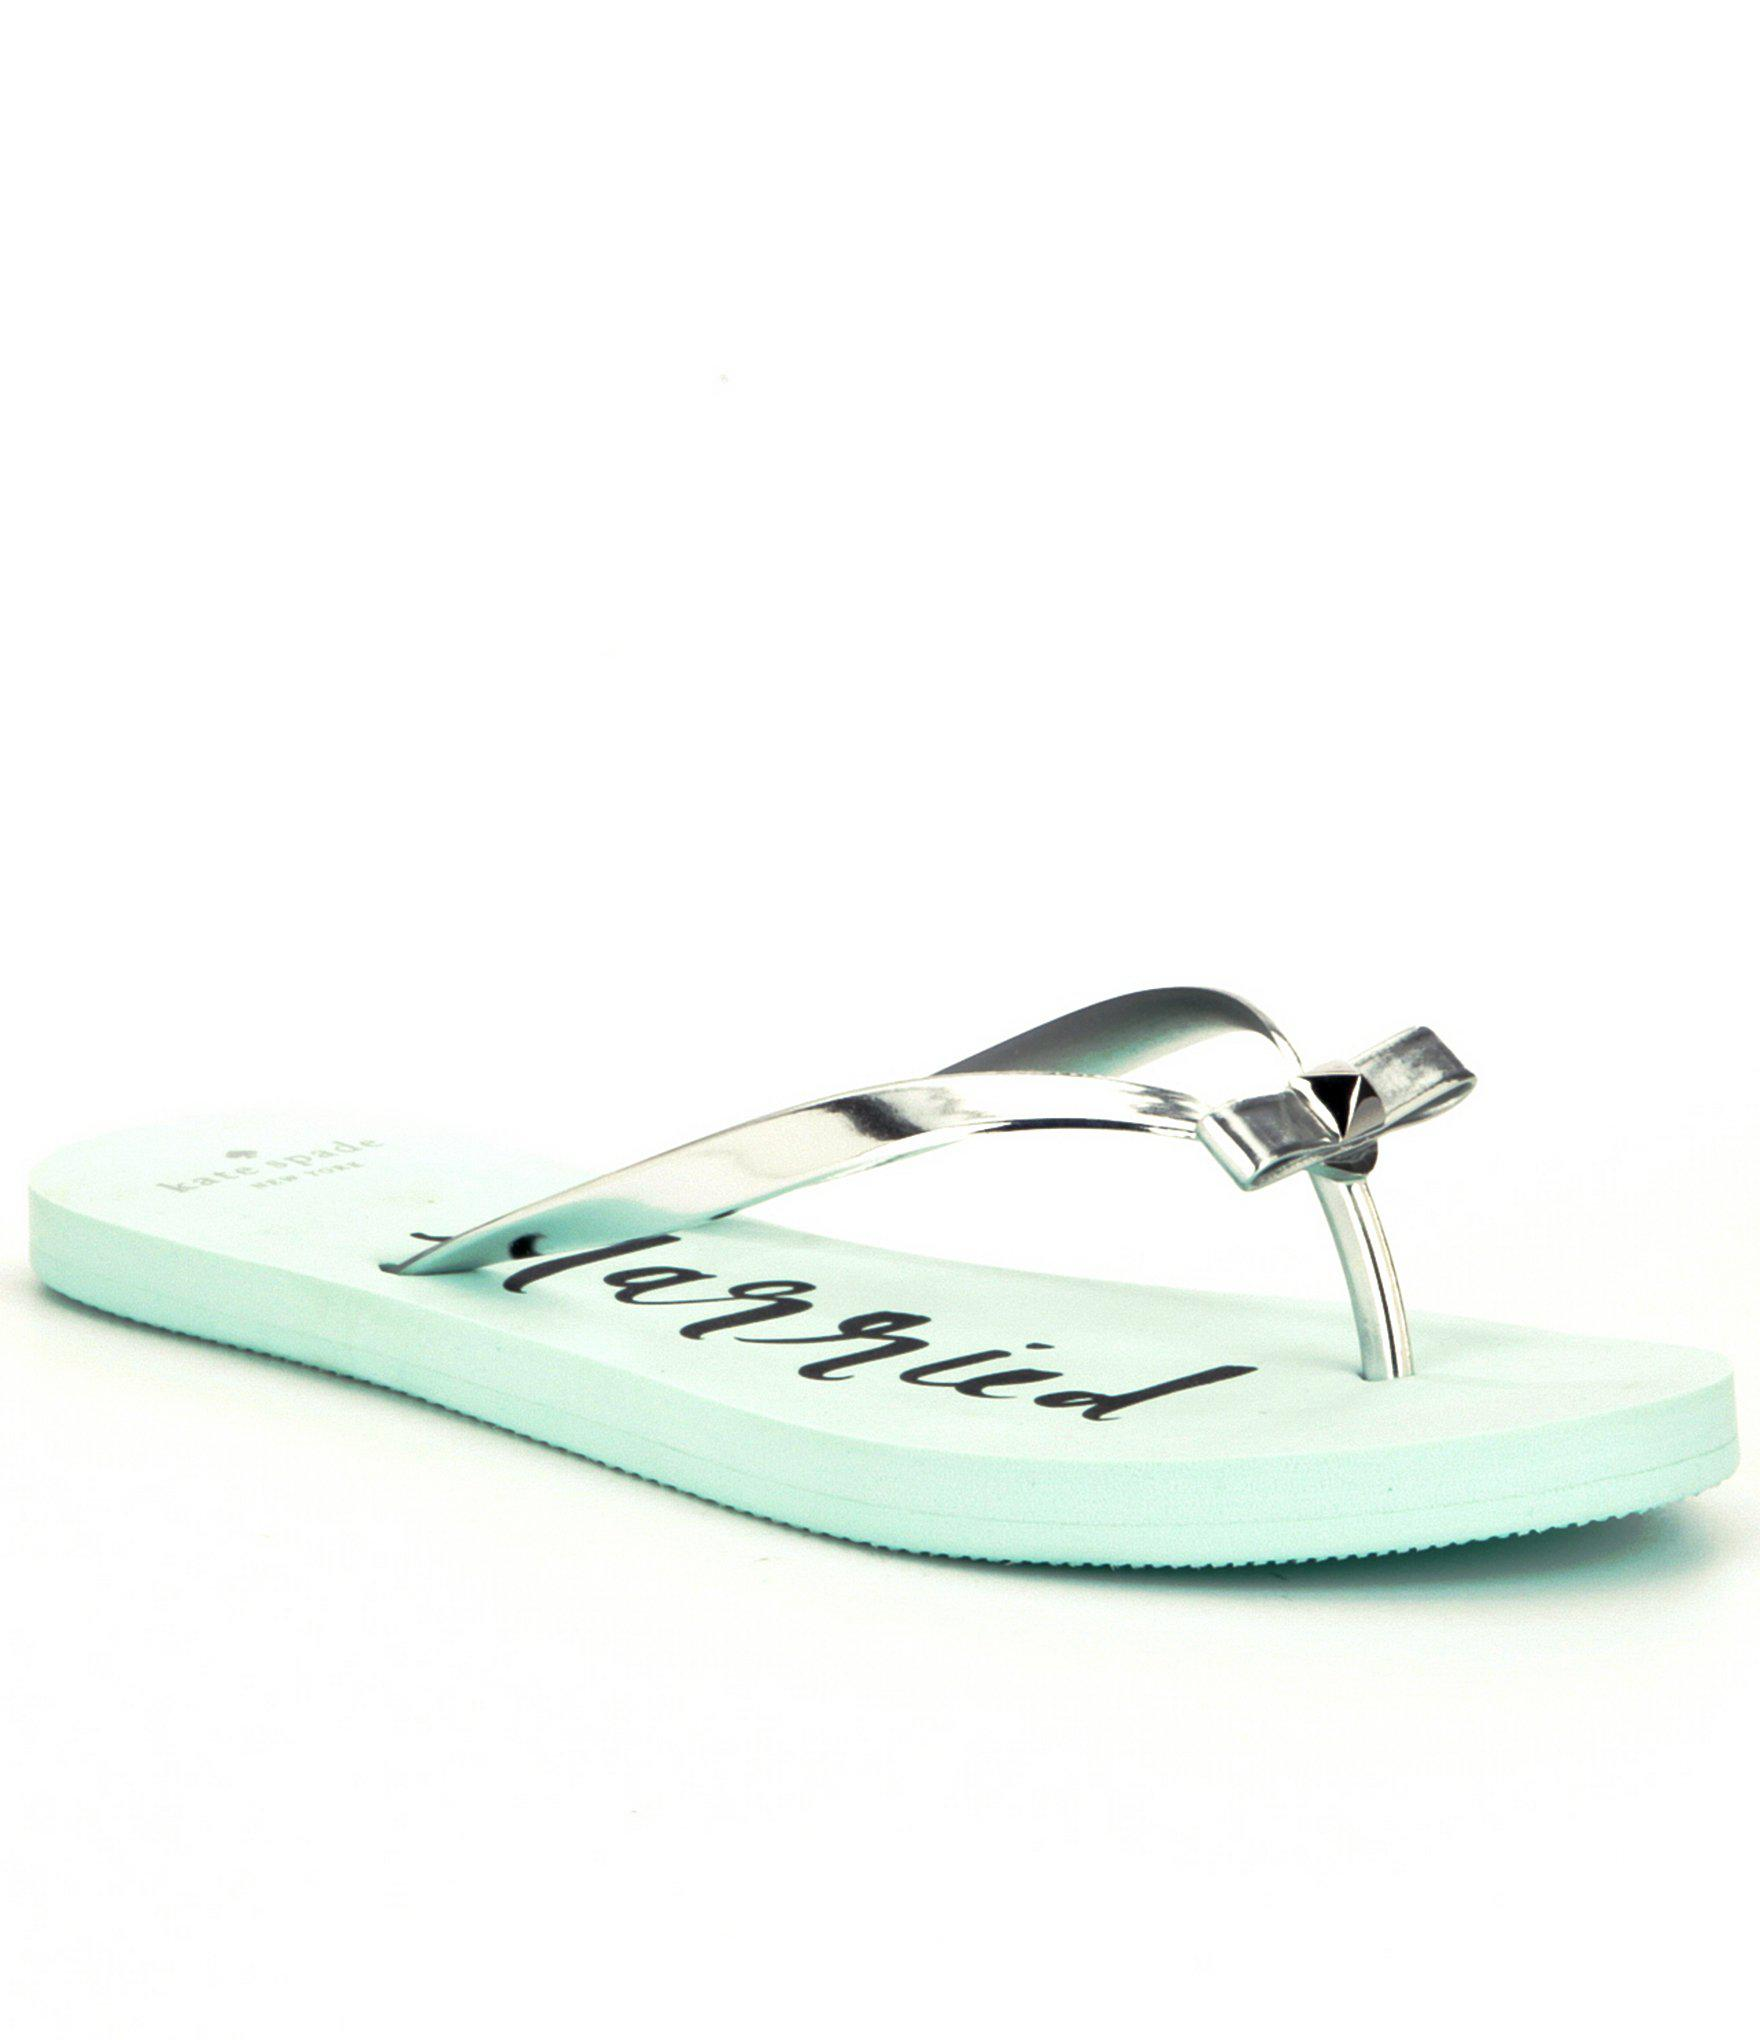 5f72d735e993 Lyst - Kate Spade Nadine Metallic Flip-flop Sandals in Blue